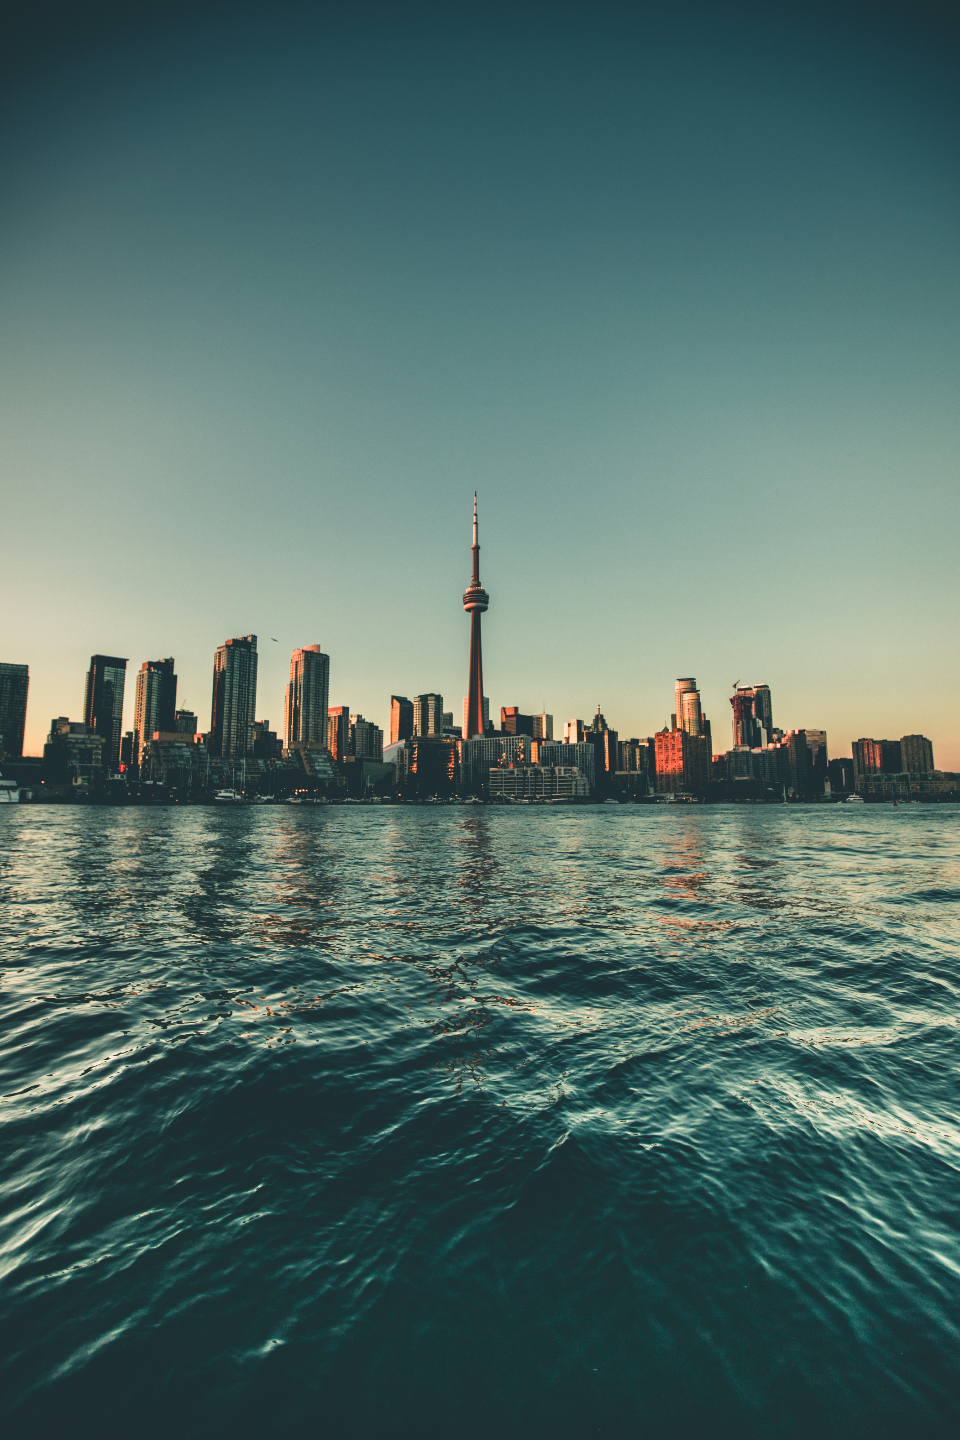 City Toronto Lake Water Urban Buildings CN Tower Tower building landscape city scape cityscape